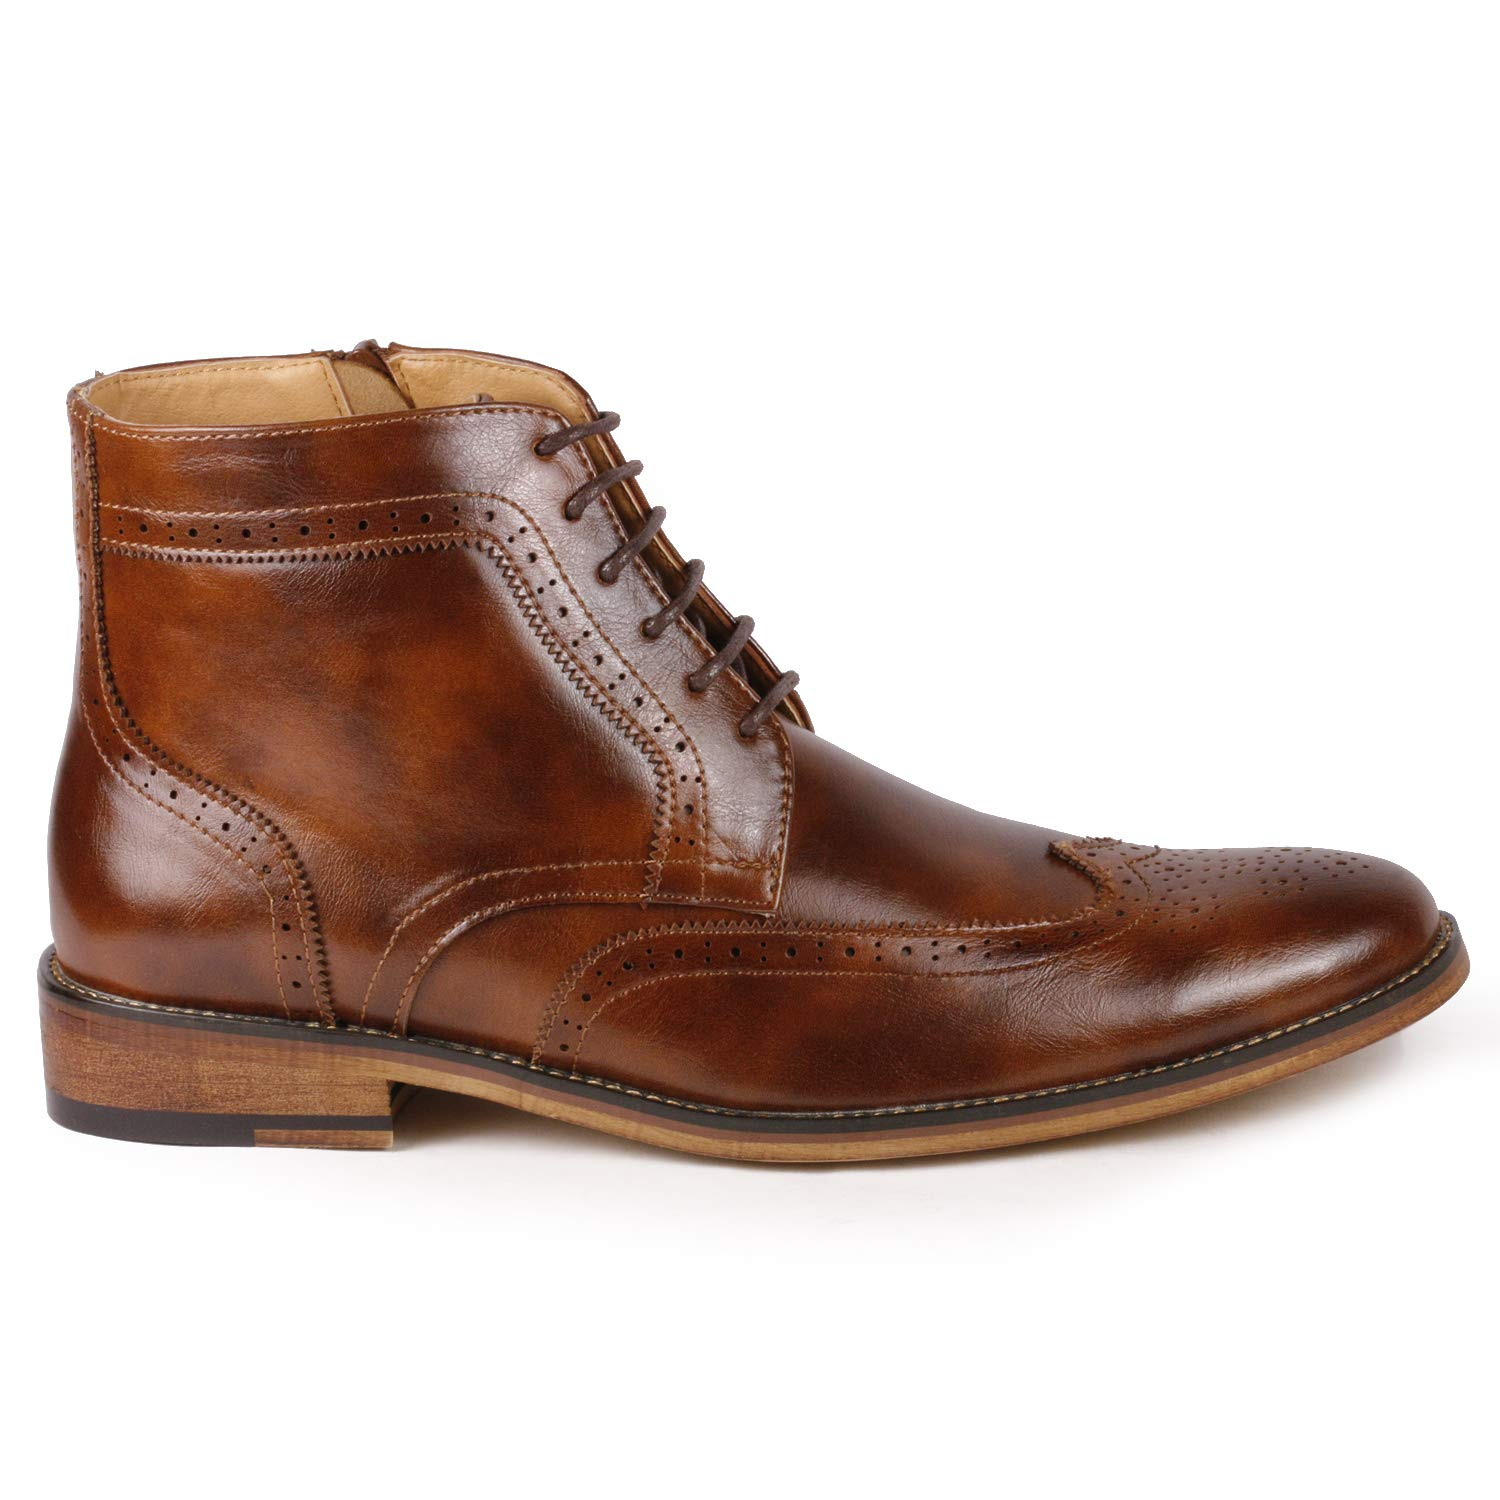 Metrocharm MC141 Mens Wing Tip Lace up Ankle Dress Oxford Boot